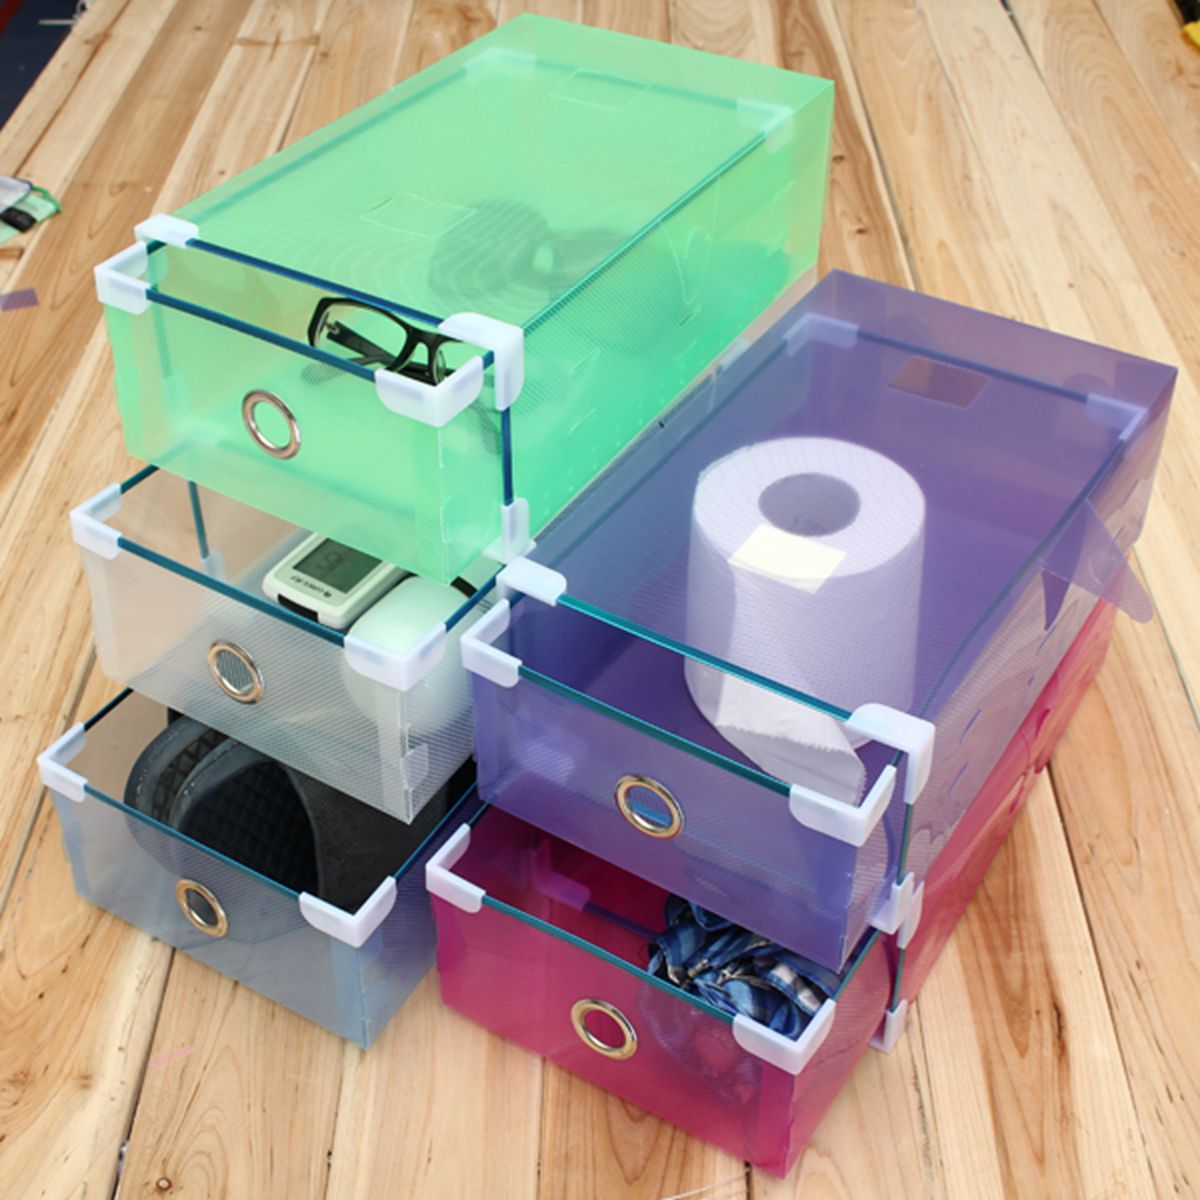 New Arrival 1Pcs House Organizer Transparent Clear Plastic Shoe Boot Box Stackable Foldable Storage Drawer Box 30 X 9cm(China (Mainland))